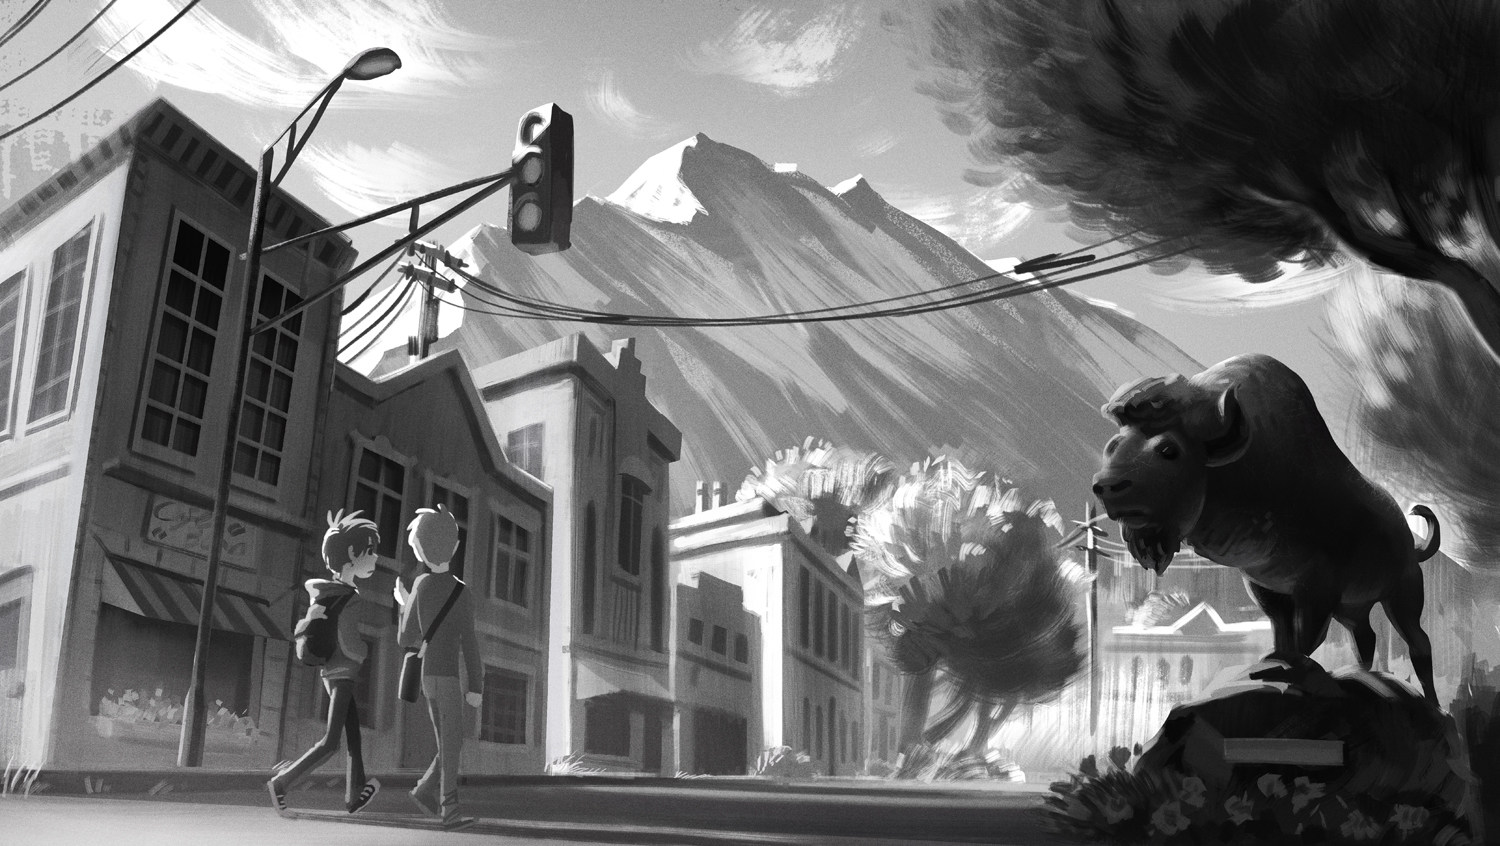 Small town by Detkef